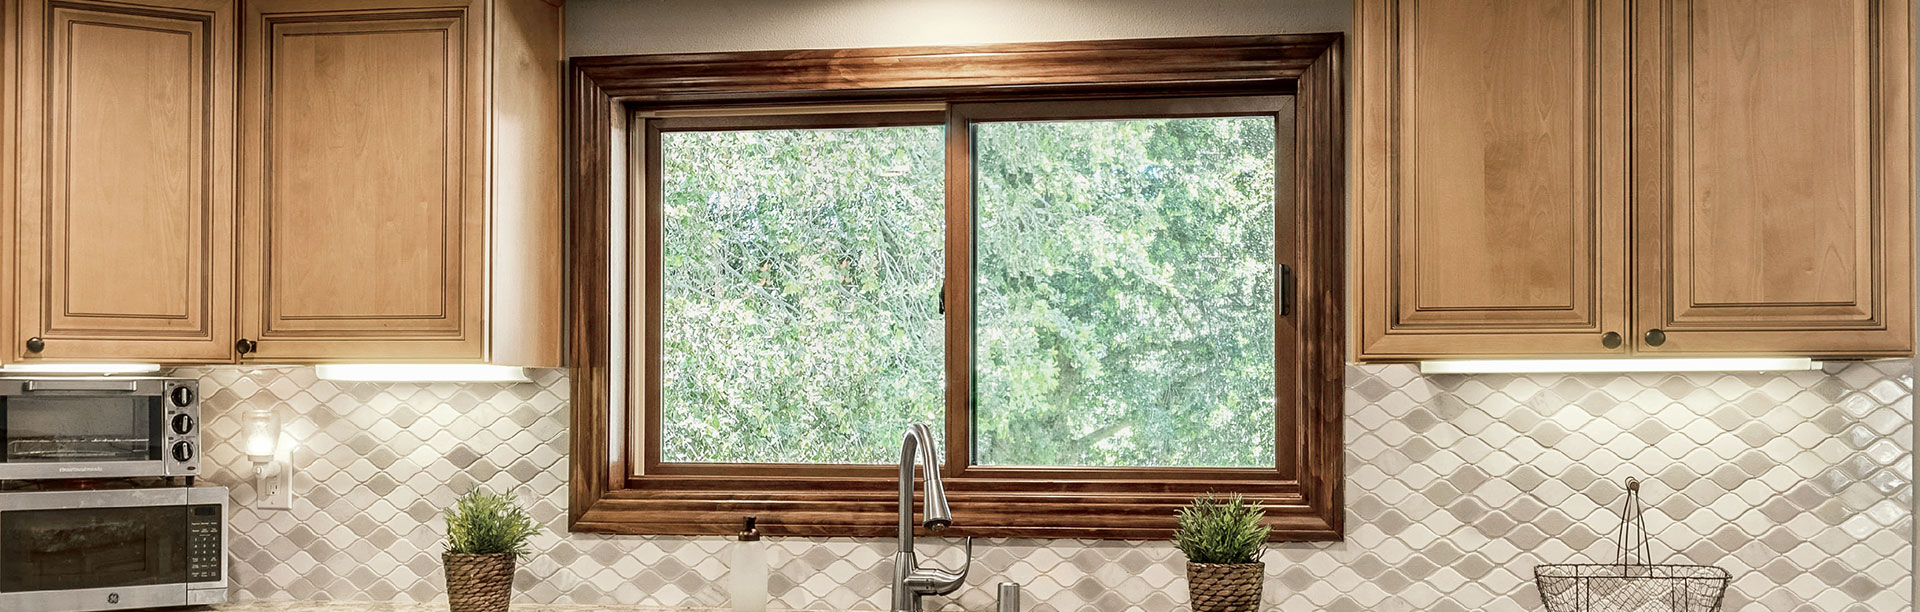 Sliding Window in Kitchen